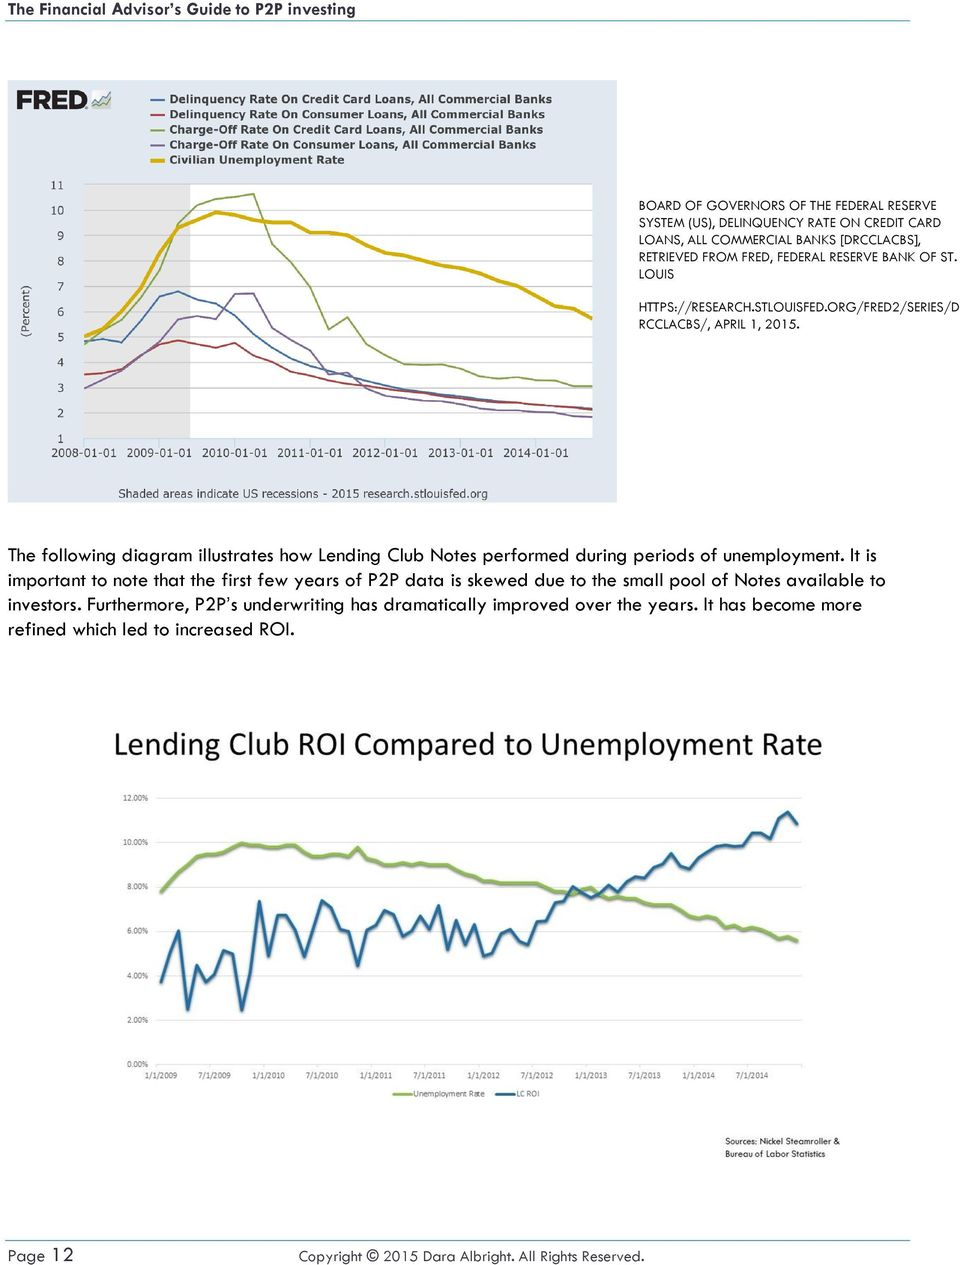 The following diagram illustrates how Lending Club Notes performed during periods of unemployment.